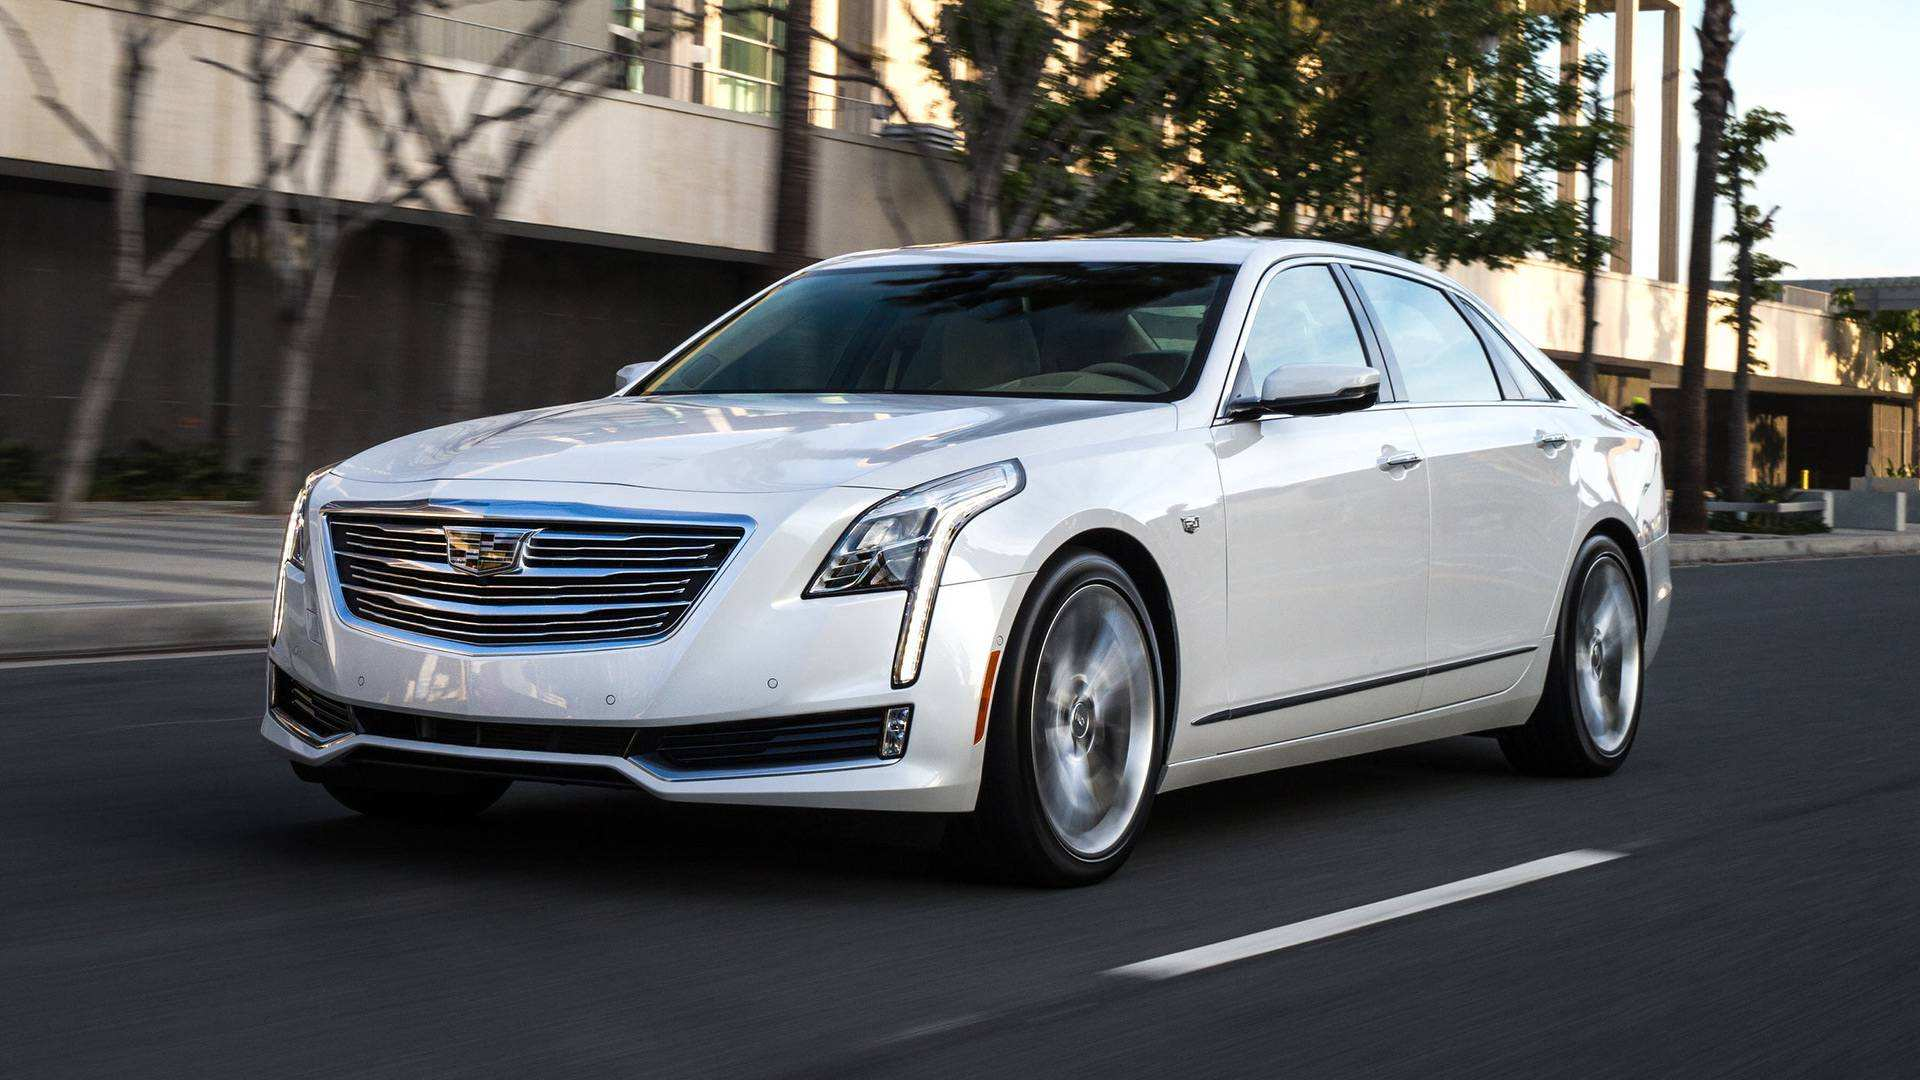 32 The 2020 Cadillac Ct6 V8 Review with 2020 Cadillac Ct6 V8